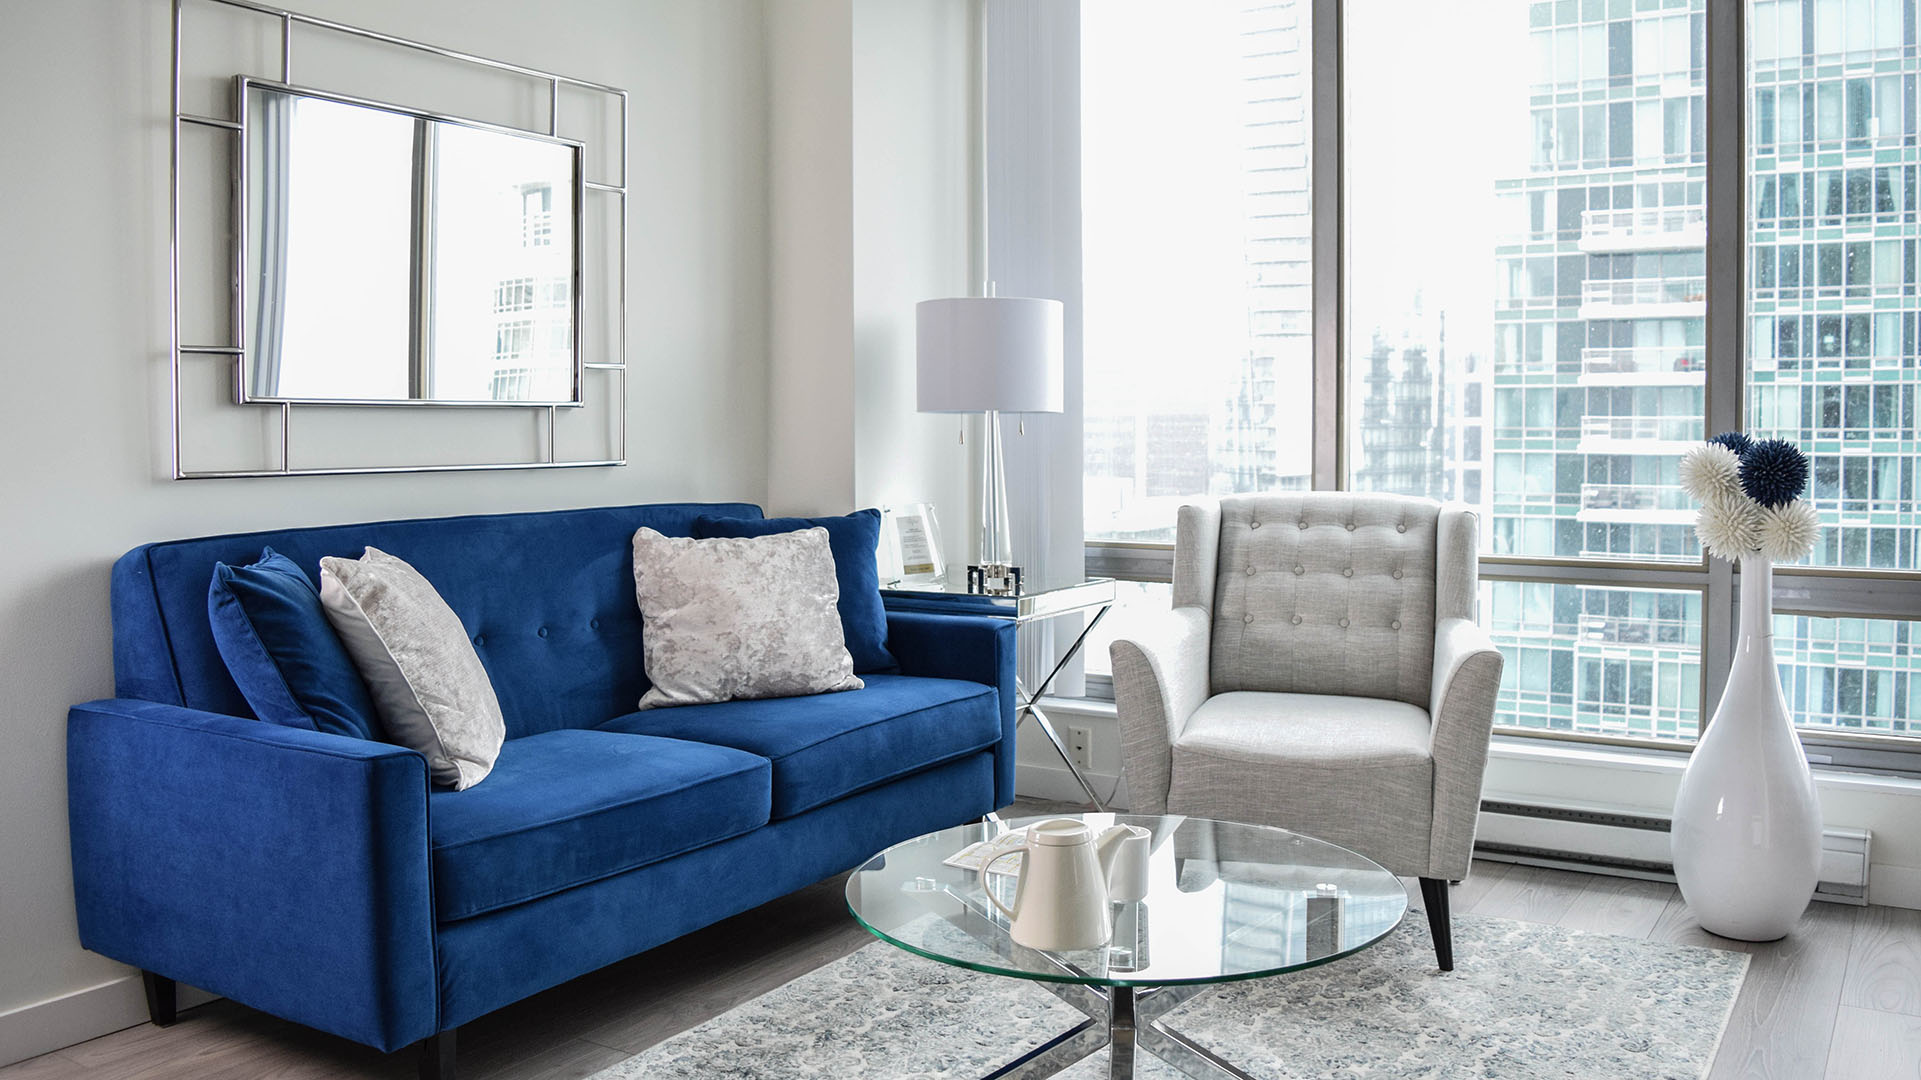 Photo of fully furnished apartment #3104 at The Residences on Georgia, 1288 West Georgia Street, Vancouver, BC